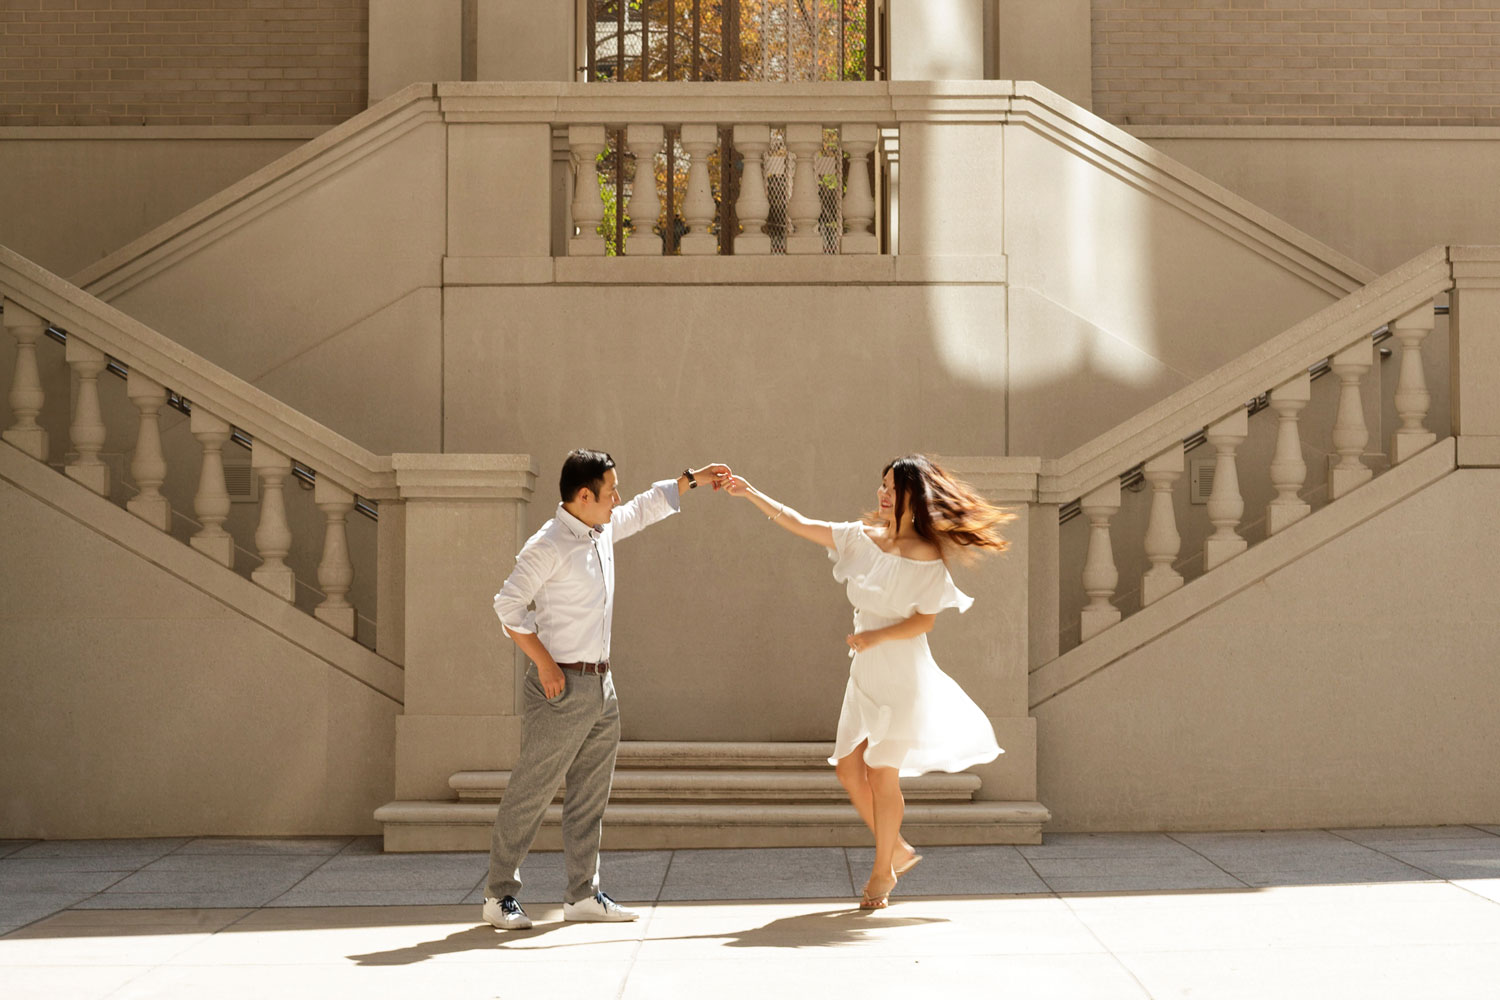 engaged couple twirling wedding engagement photo idea bob and dawn davis photography chicago